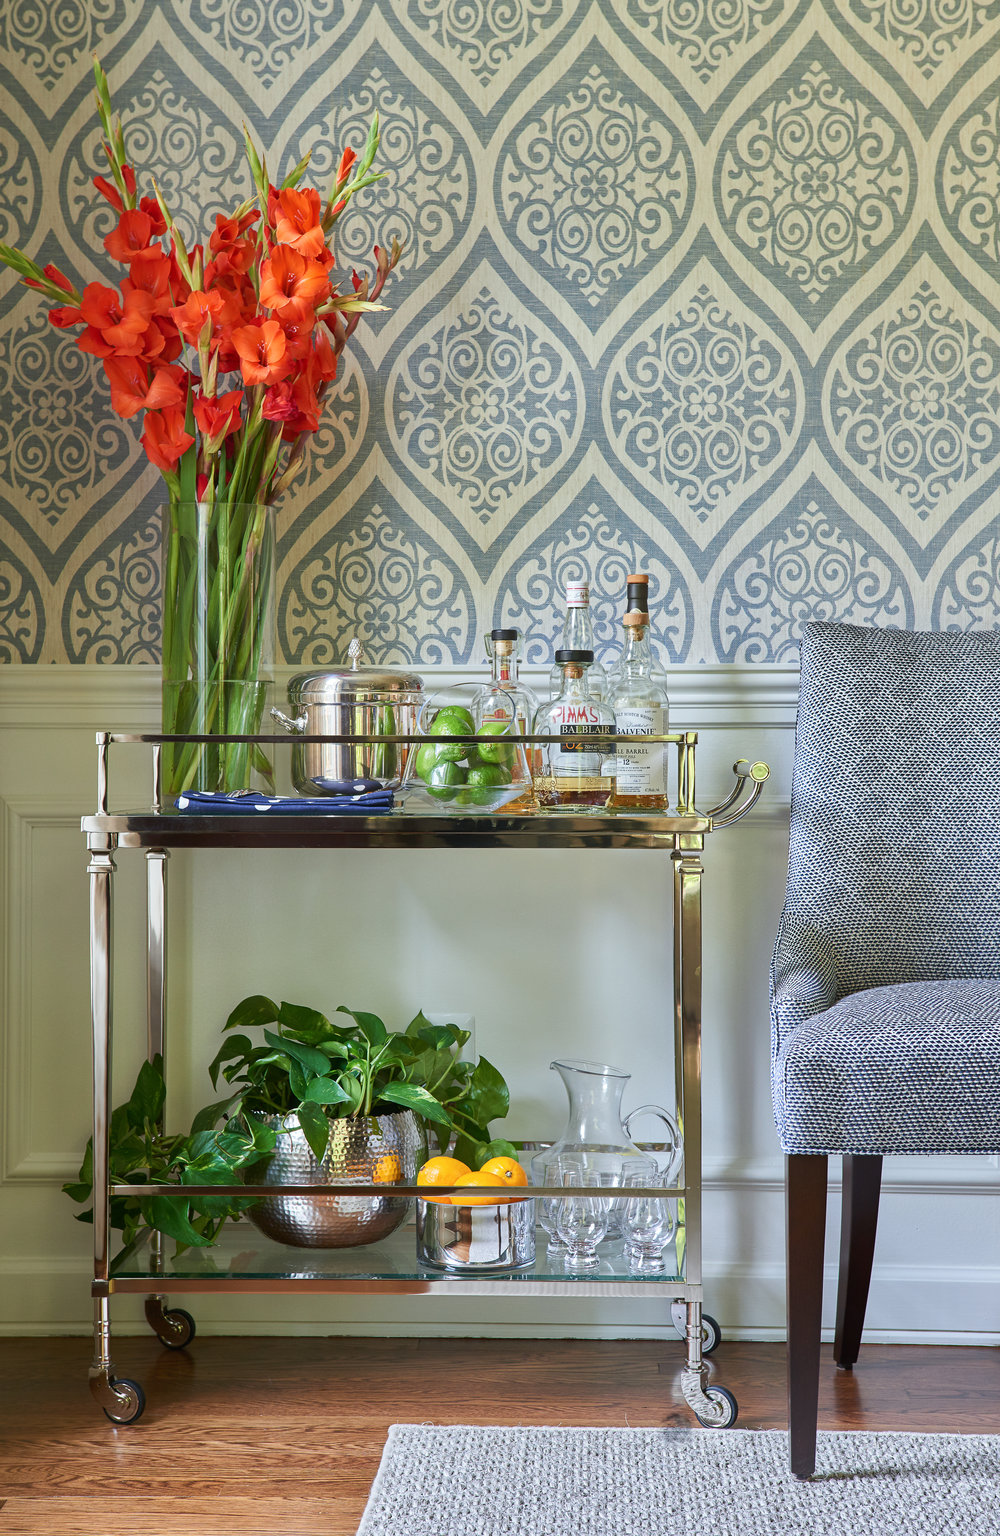 Bar Cart and Geometric Wallpaper